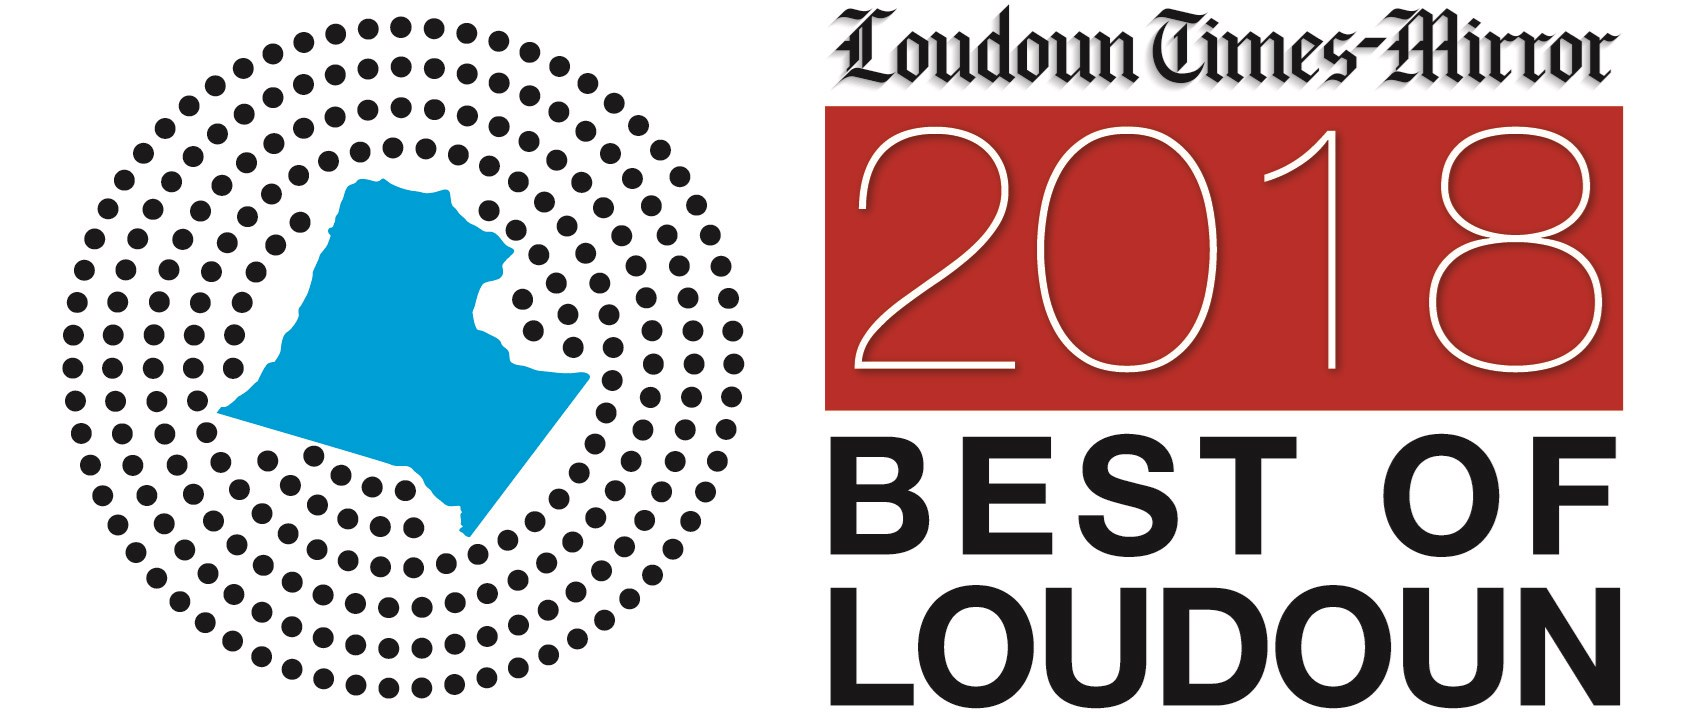 Best of Loudoun Image